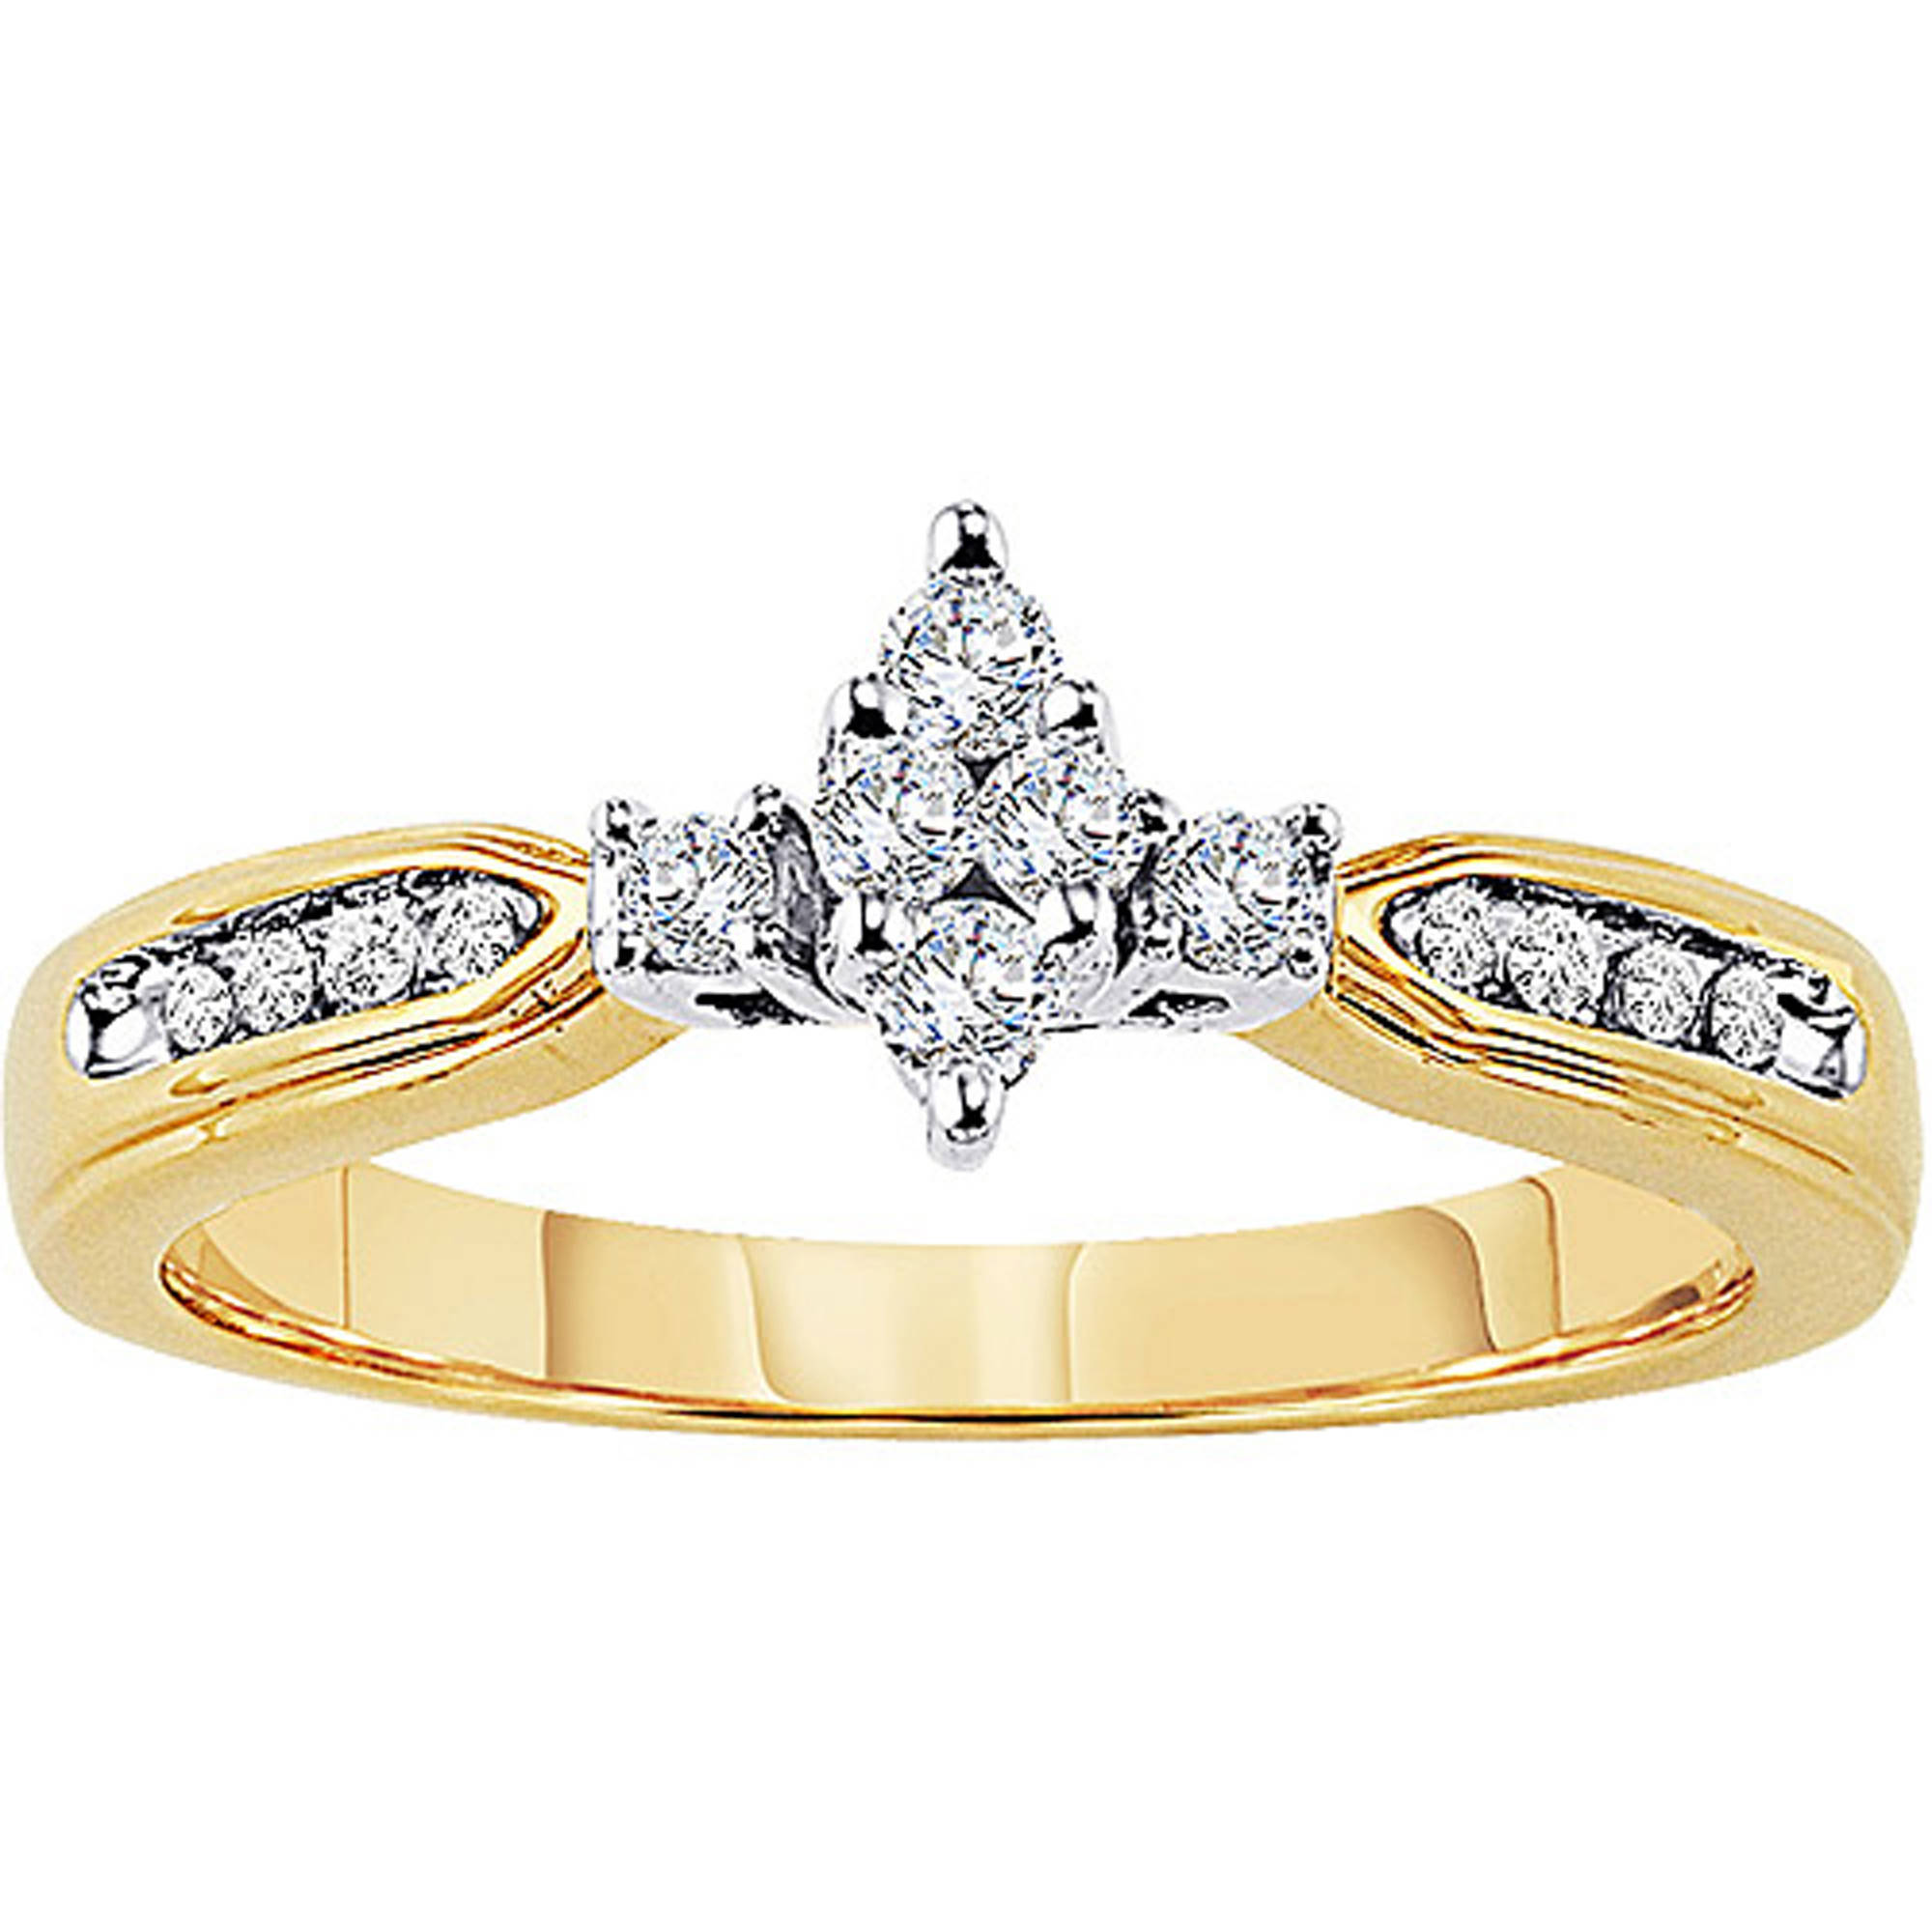 Keepsake Lovelight 1/4 Carat T.W. Diamond 10kt Yellow Gold Engagement Ring